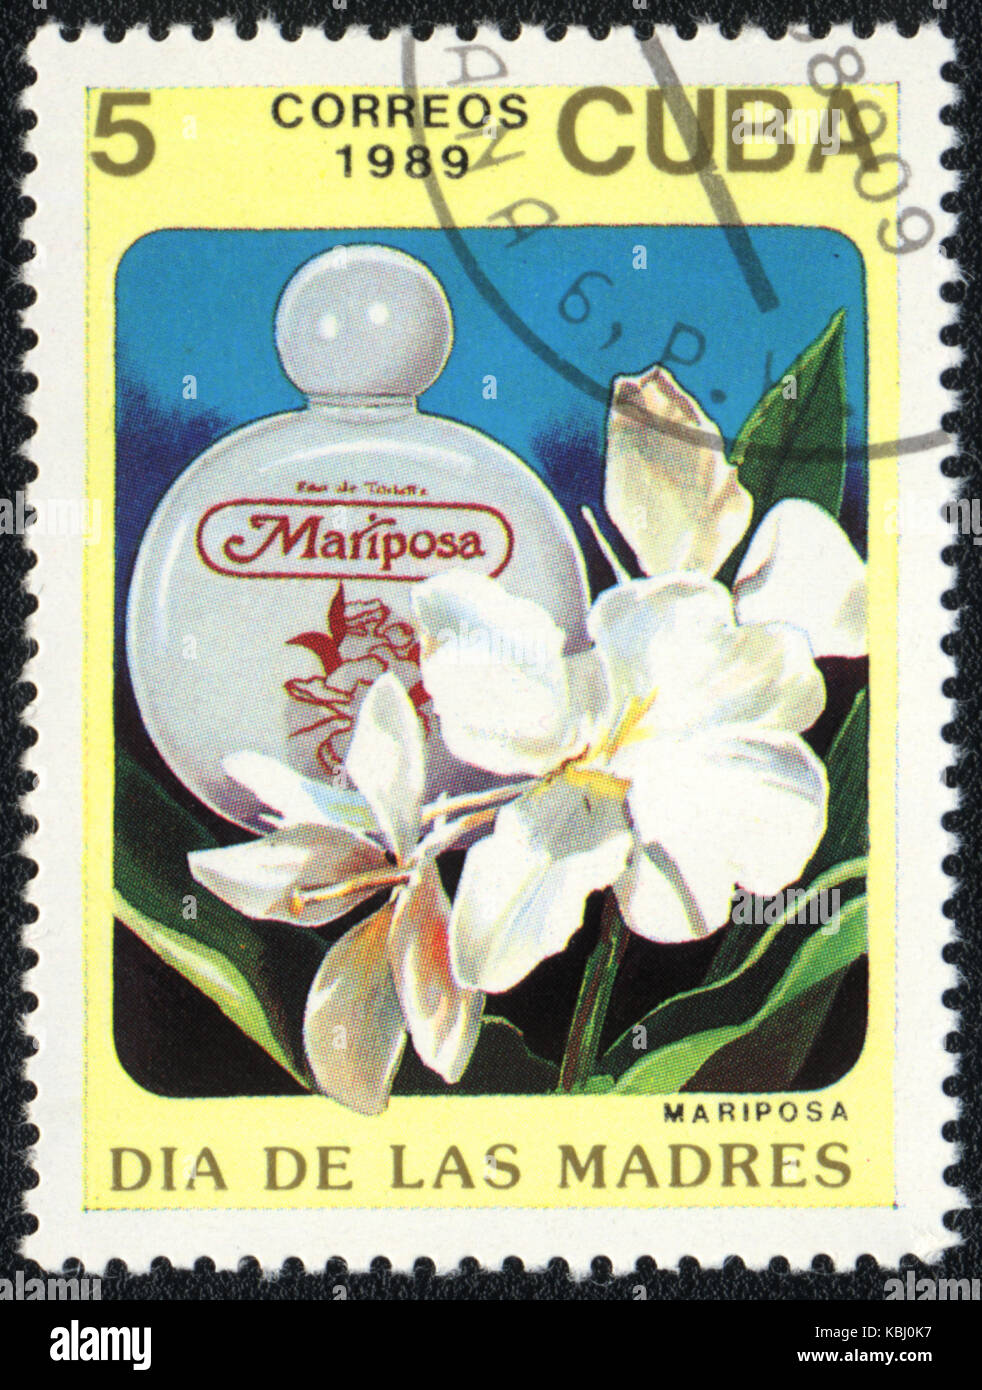 A stamp printed in CUBA shows a Bottle of mariposa perfume, circa 1989 - Stock Image